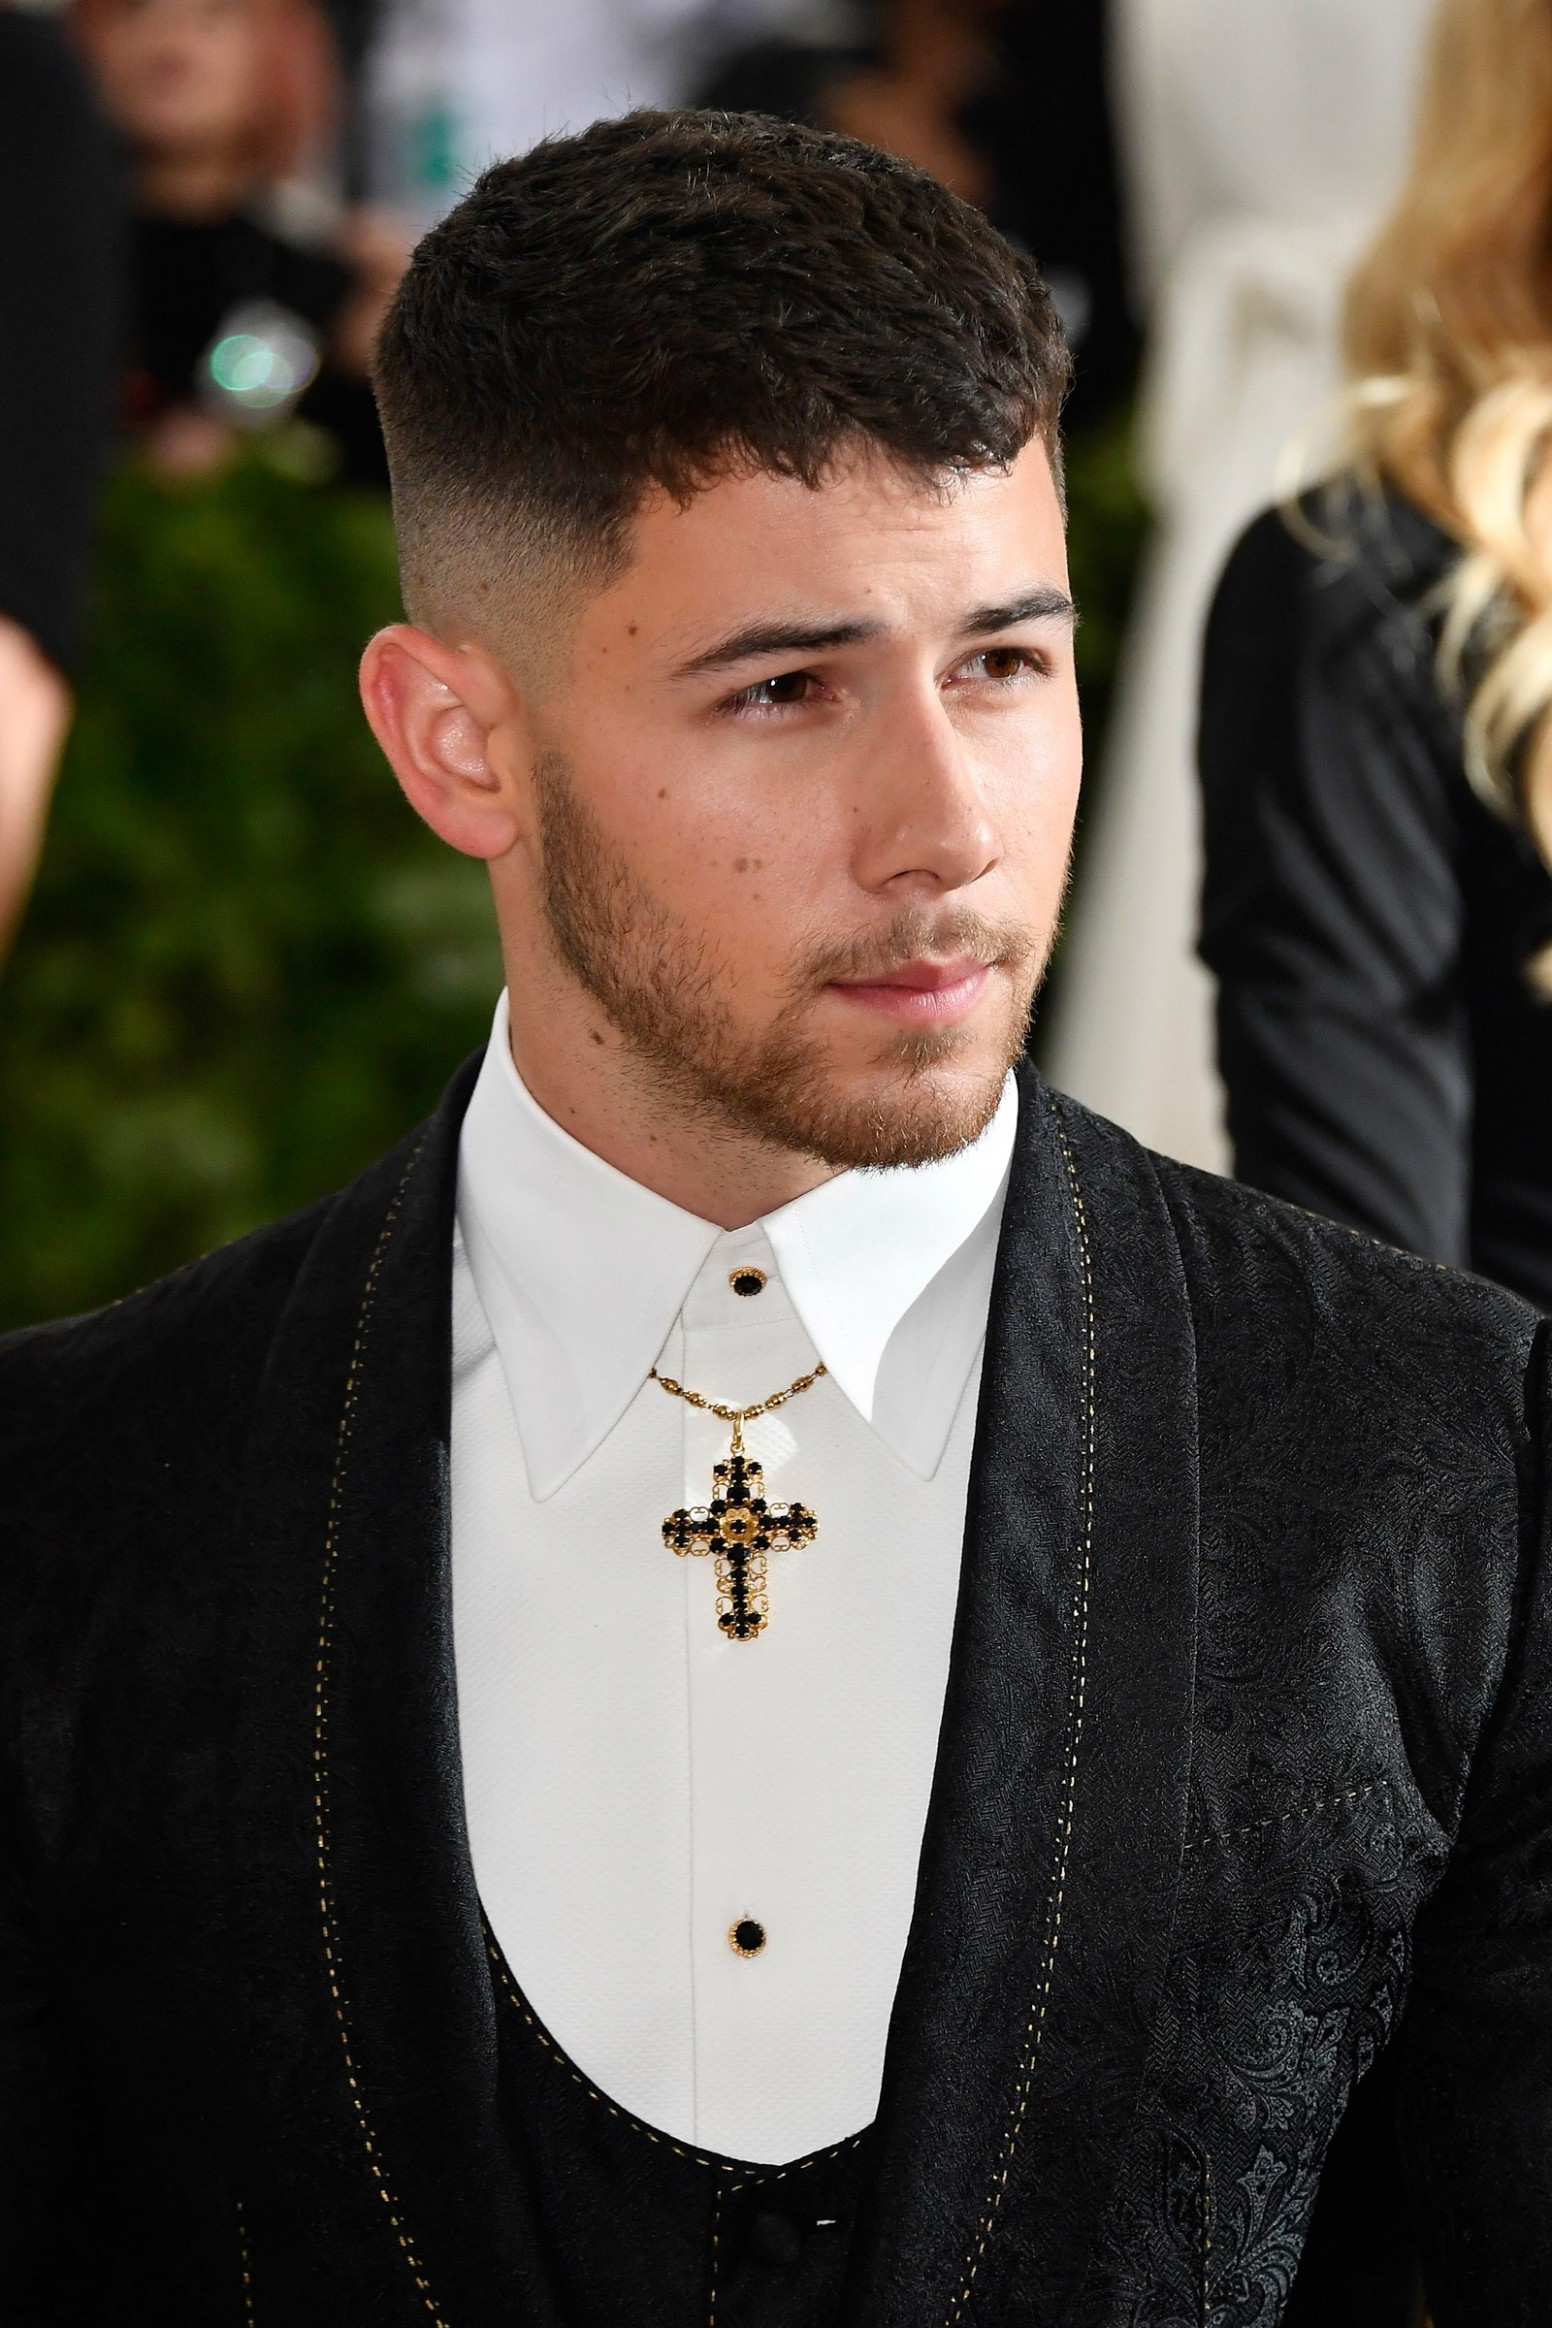 The Best Short Haircuts For Men This Summer GQ Short Haircuts For Men